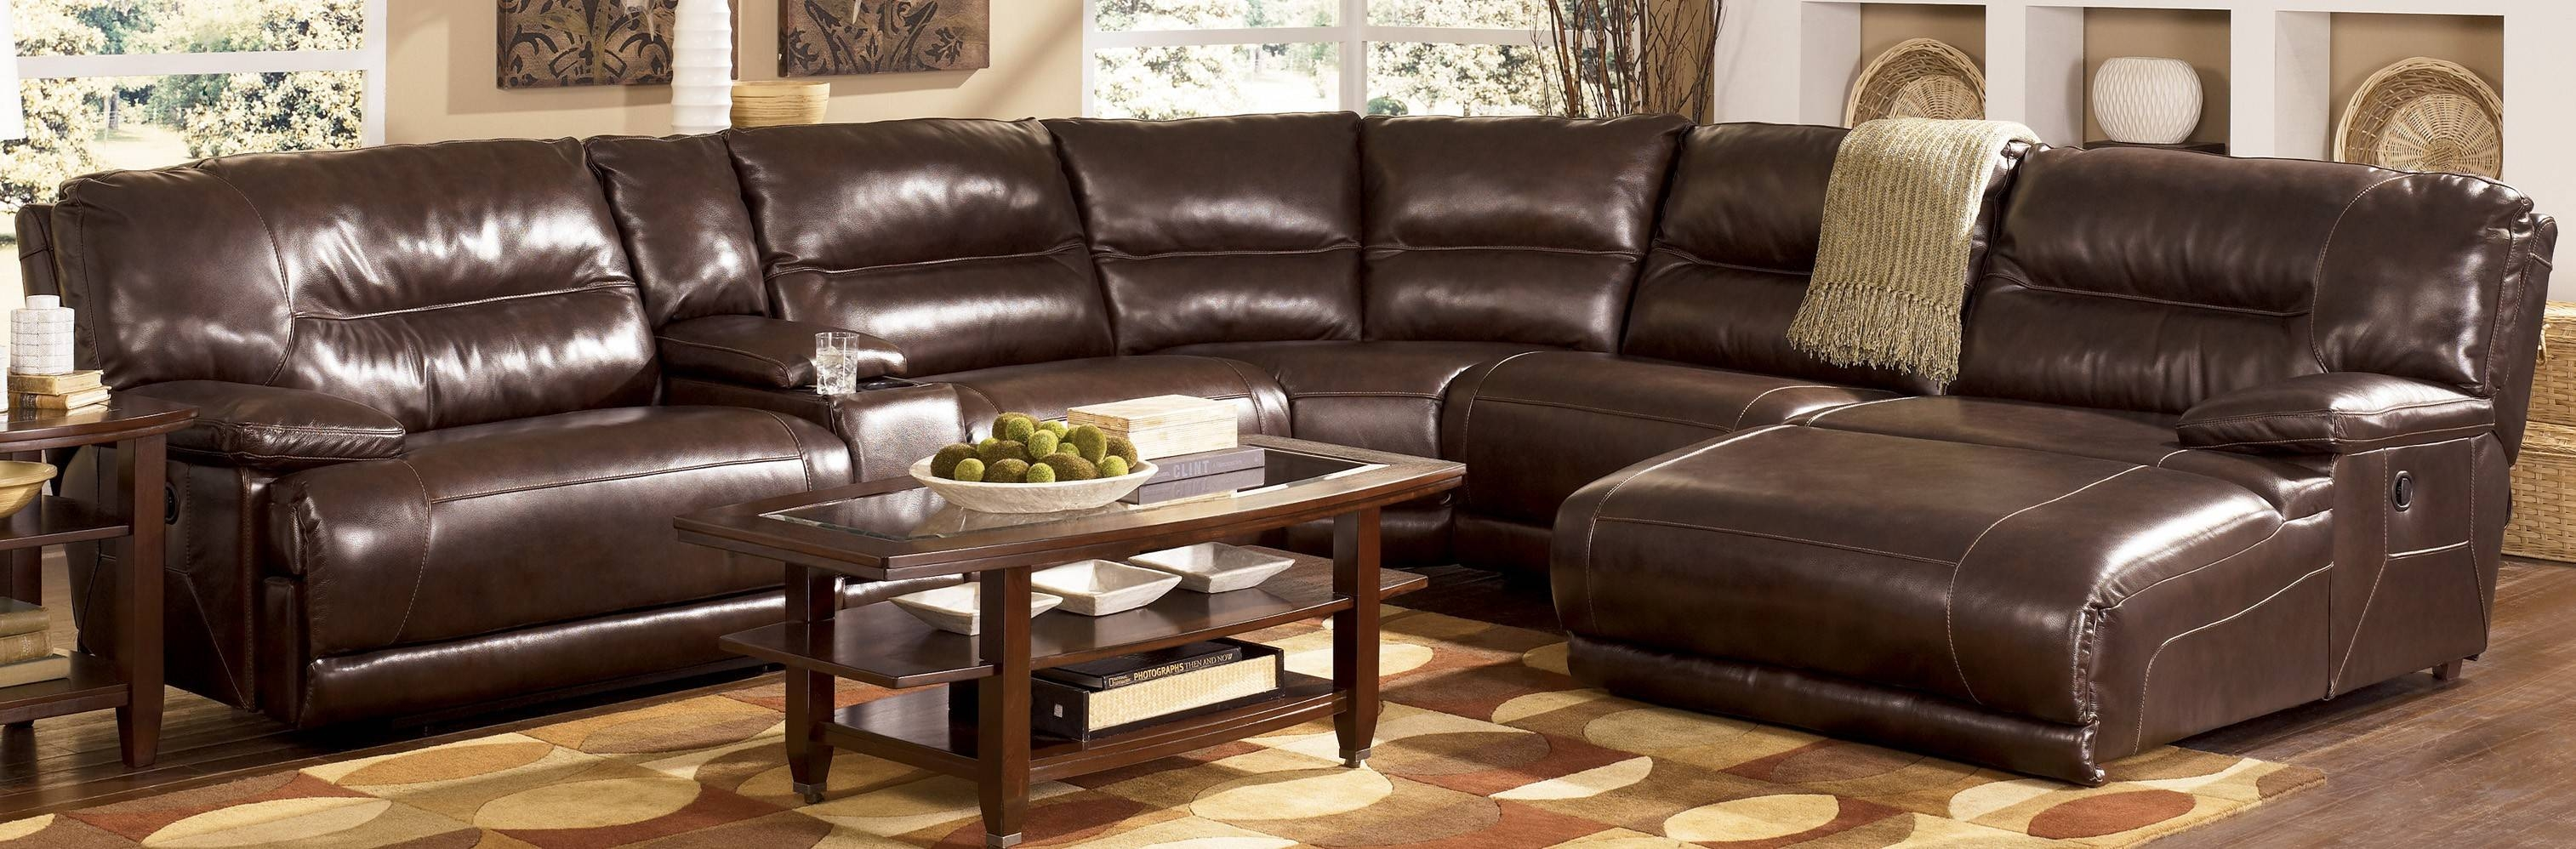 down filled leather sectional sofa camper the best sofas